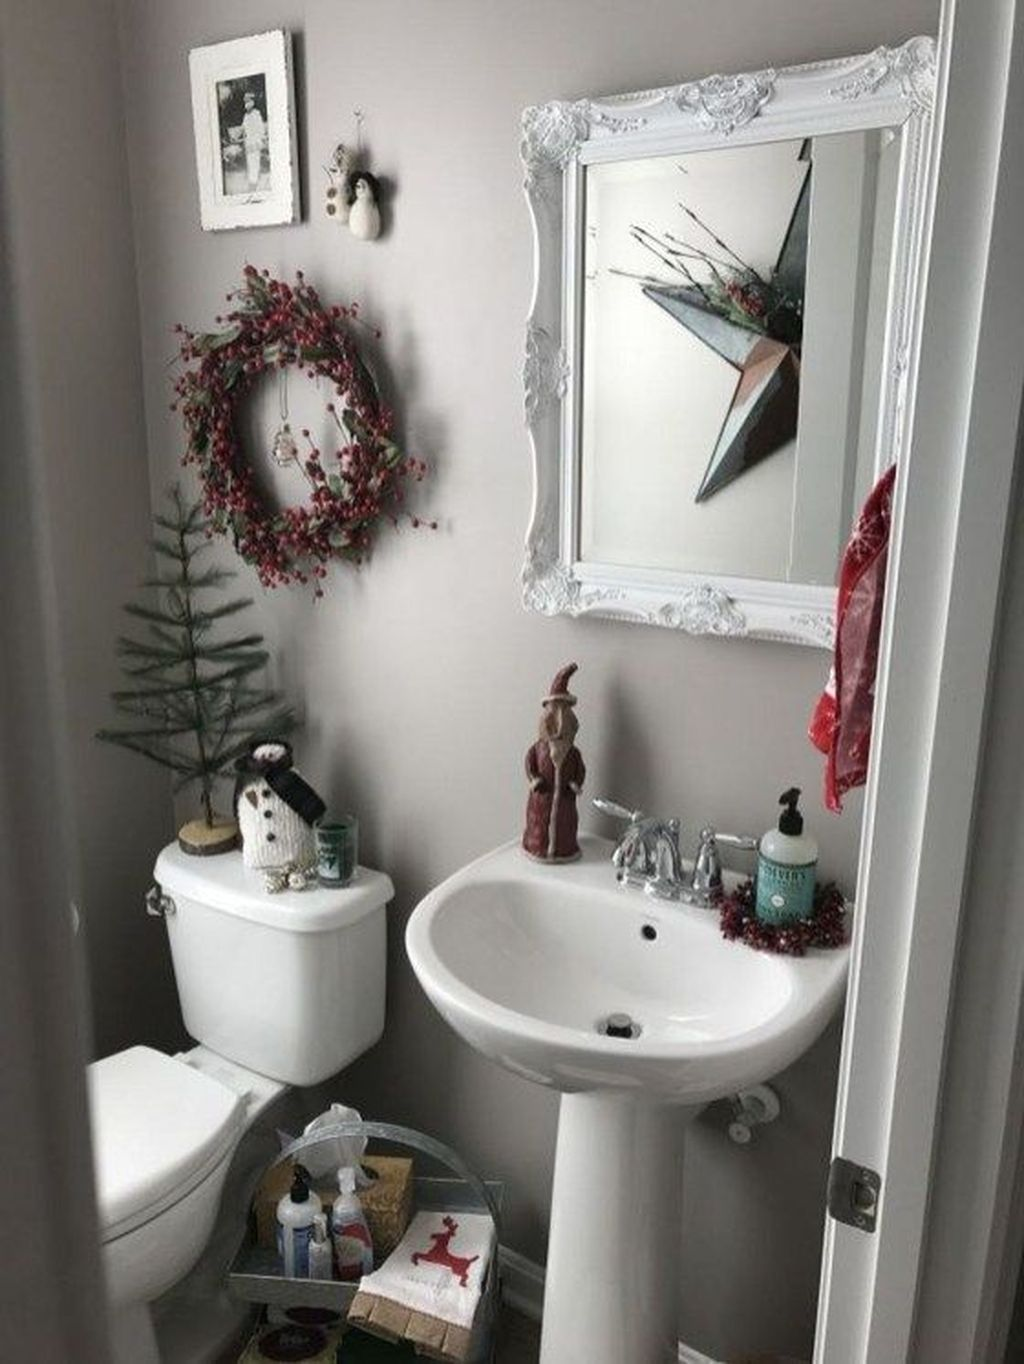 The Best Winter Bathroom Decor Ideas 26